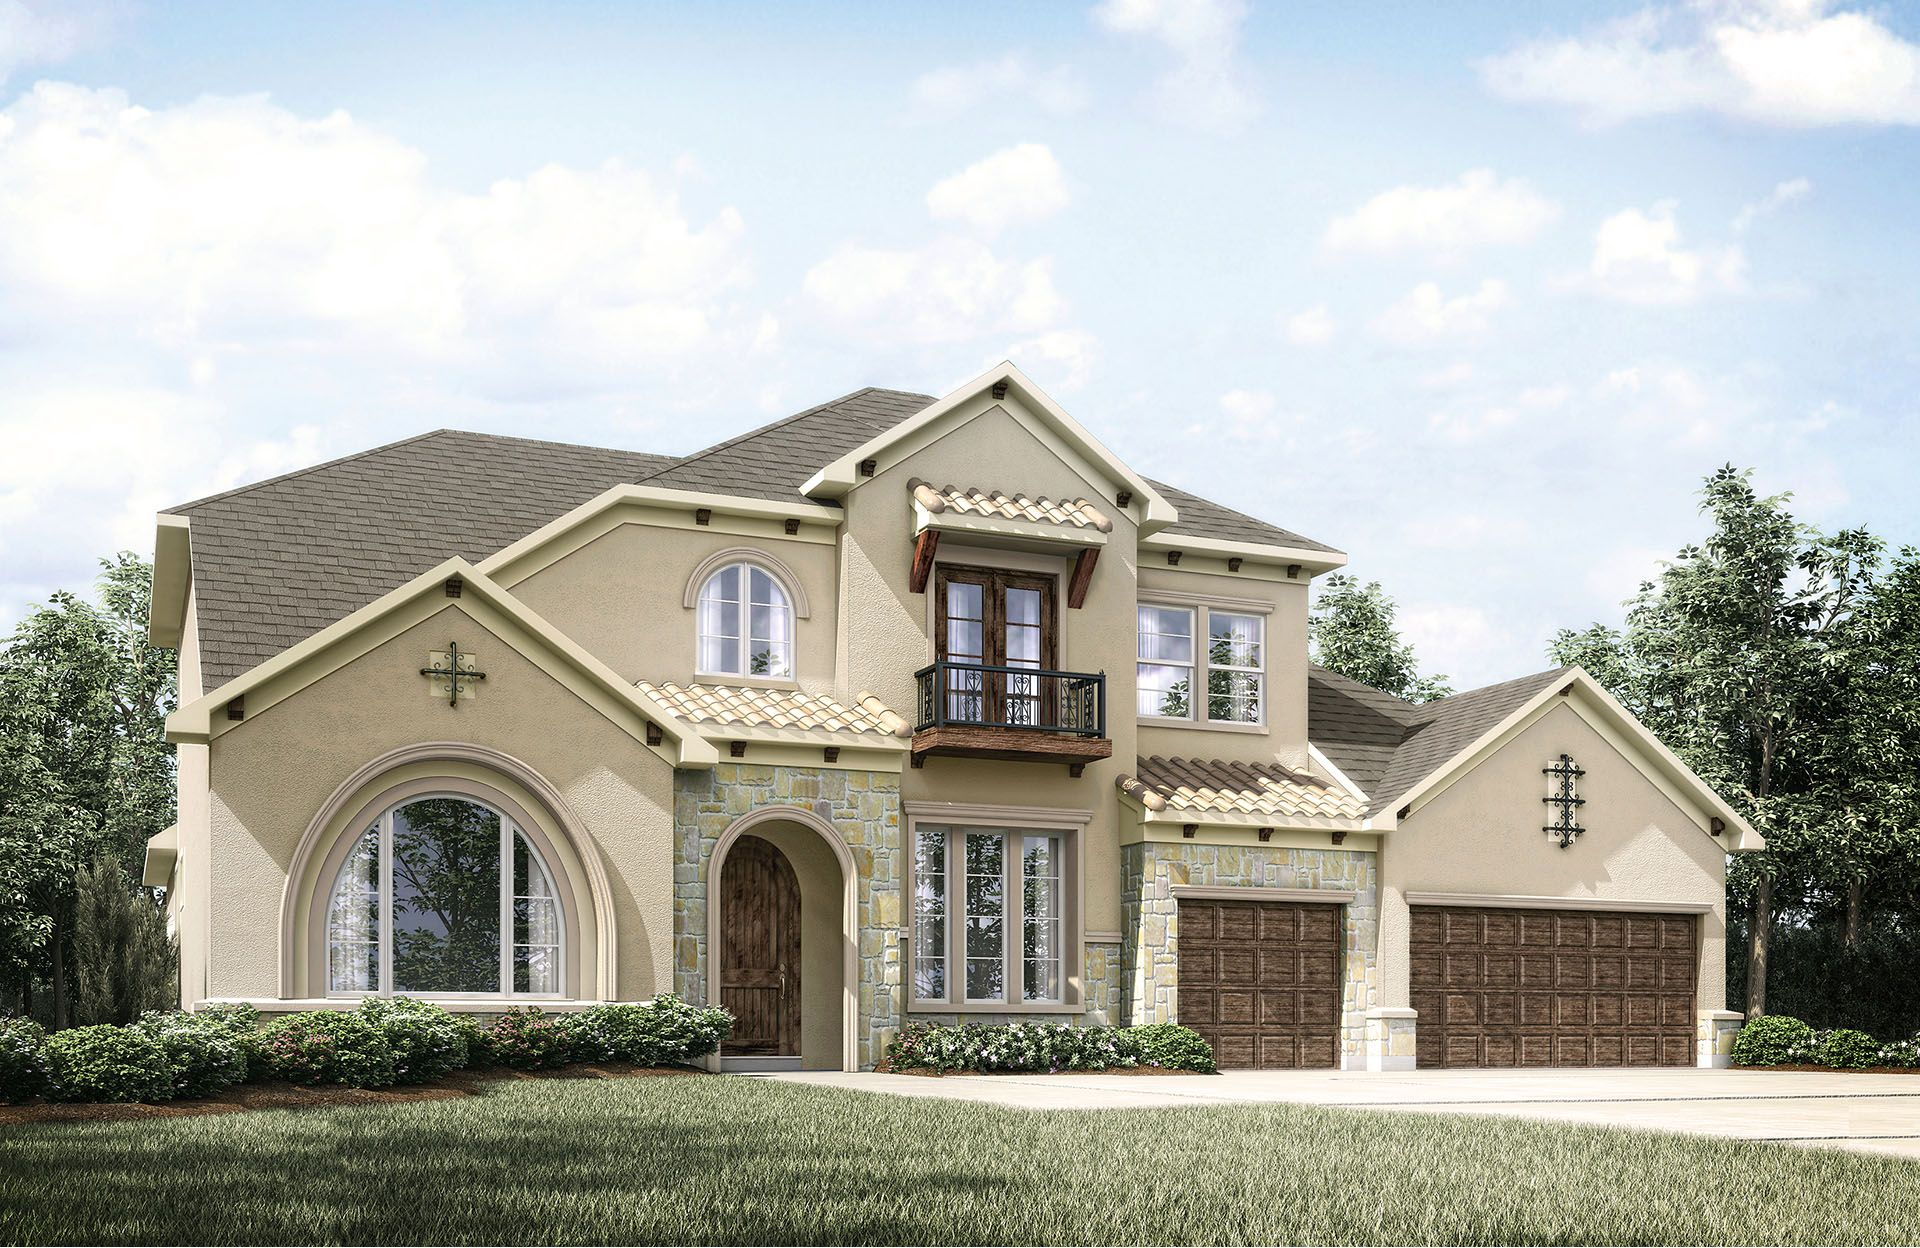 Unifamiliar por un Venta en Woodtrace - Colinas Iv 33823 Mill Creek Way Pinehurst, Texas 77362 United States